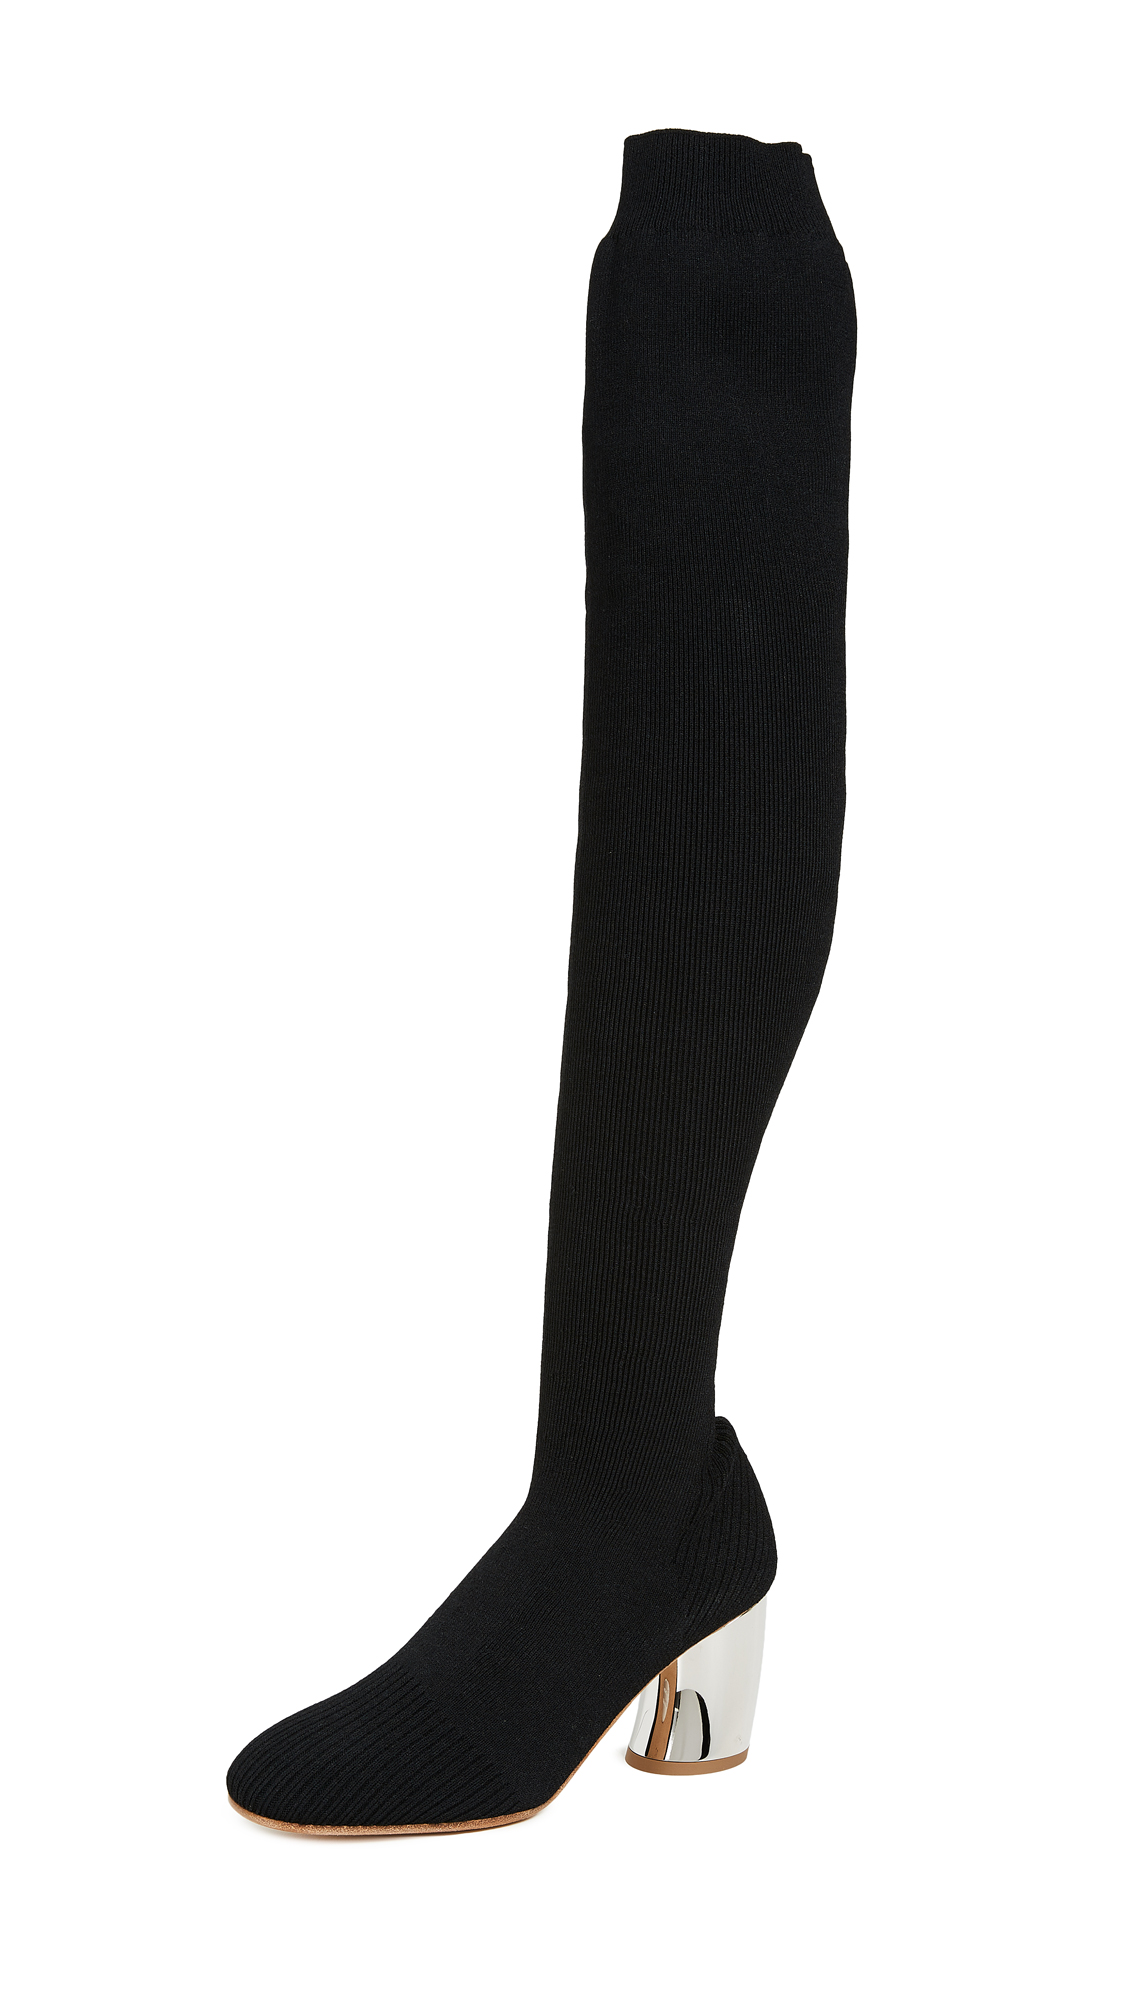 Proenza Schouler Knit Thigh High Boots - Black